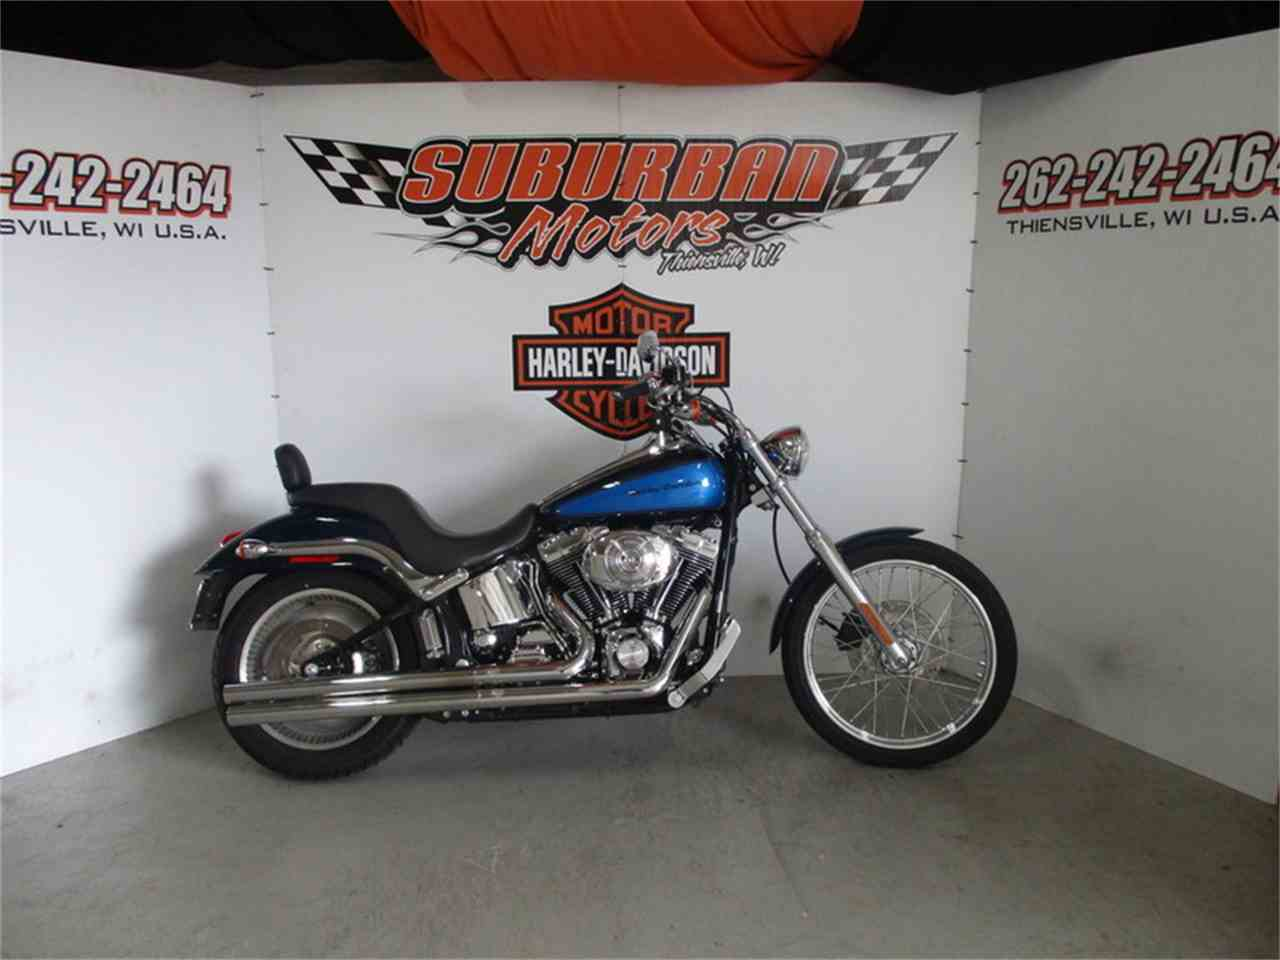 Large Picture of 2004 Harley-Davidson® FXSTDI located in Thiensville Wisconsin - $6,488.00 Offered by Suburban Motors, Inc. - LUA3